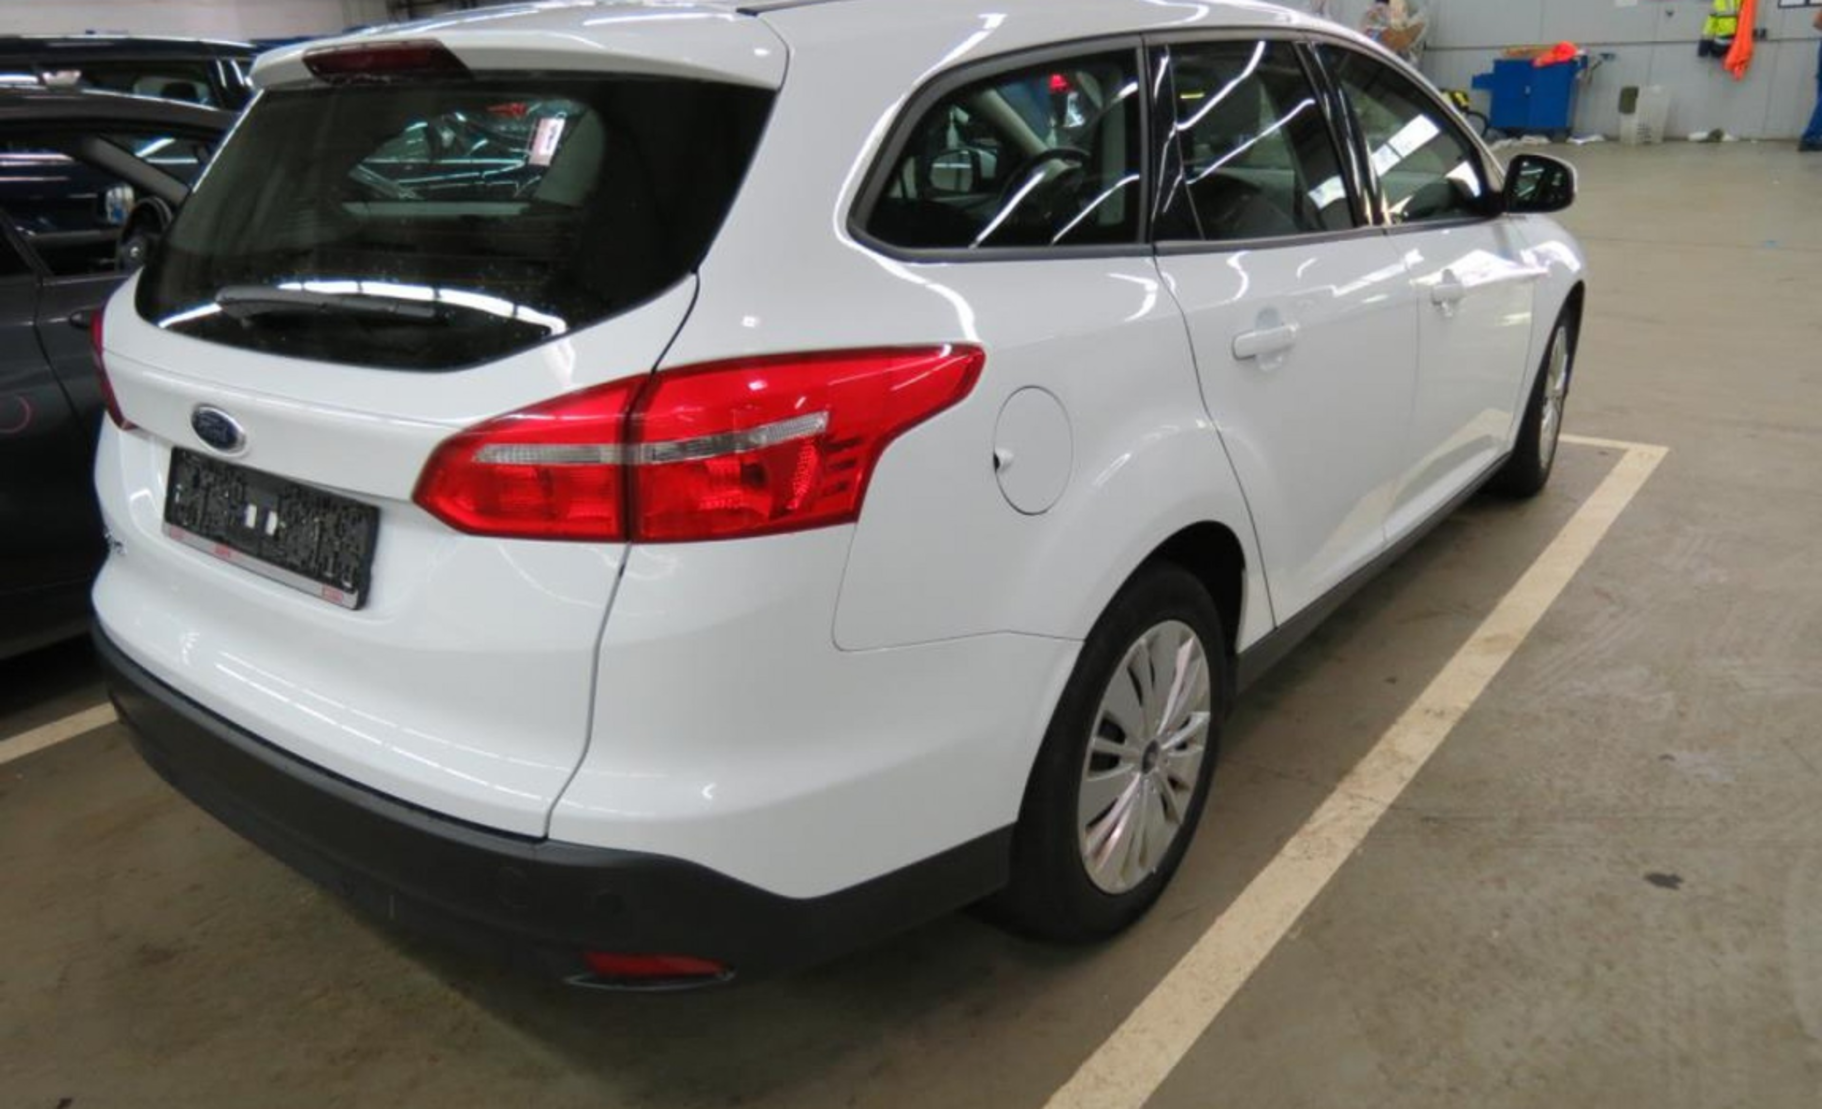 Ford Focus 1.5 TDCi DPF Start-Stopp-System Business (582688) detail2